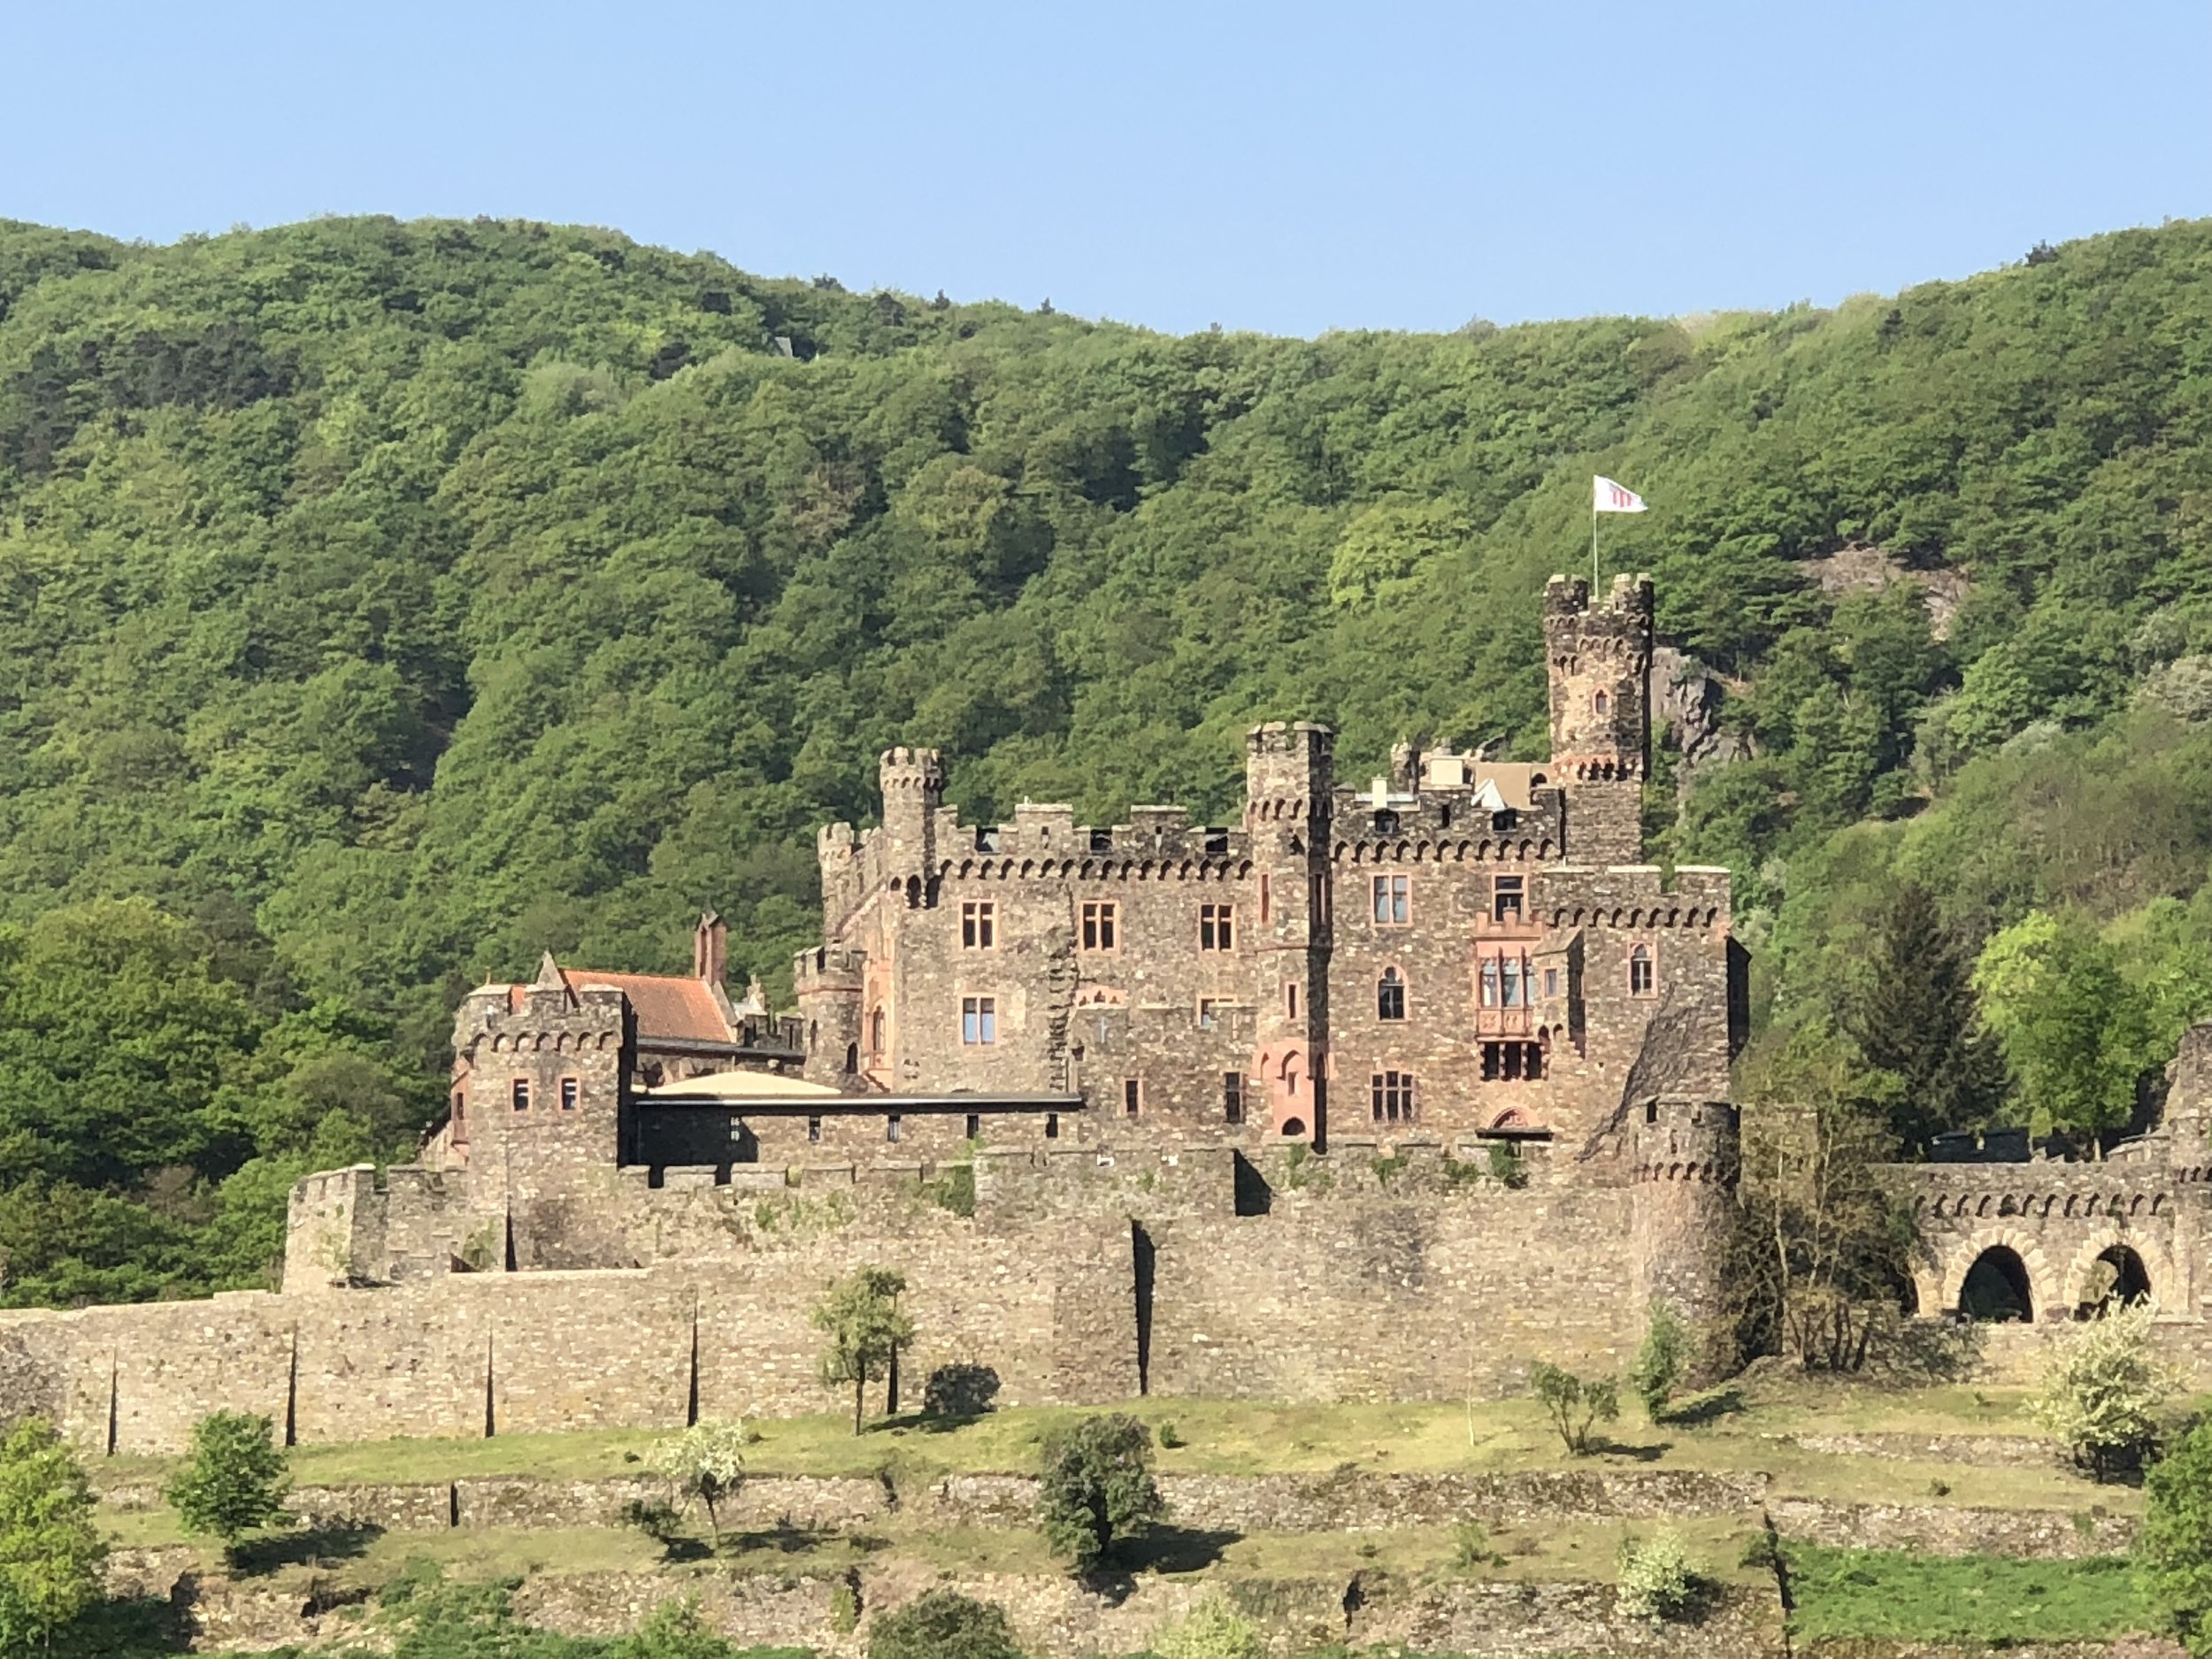 While the highlights were too many to count, I especially loved the castles and the architecture along the way.